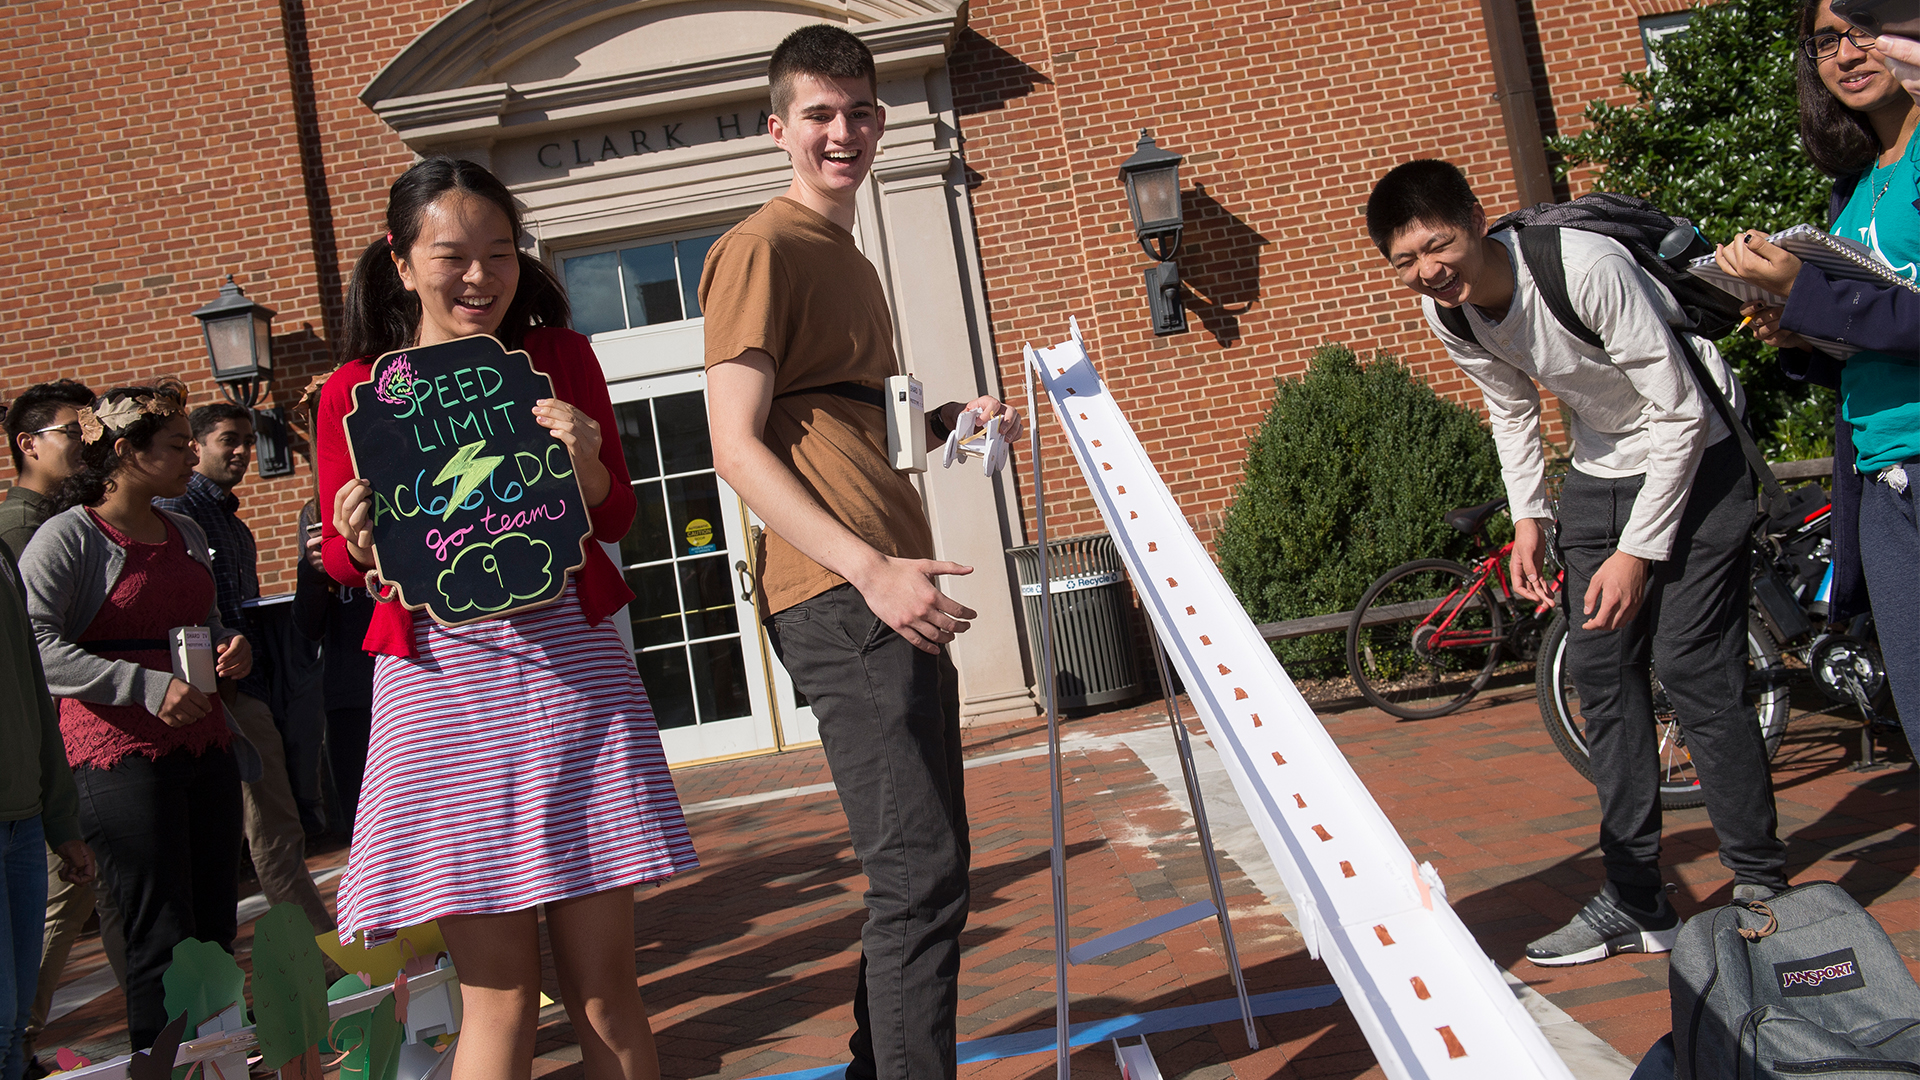 Students are outside of Clark Hall working on their foam core design challenge.